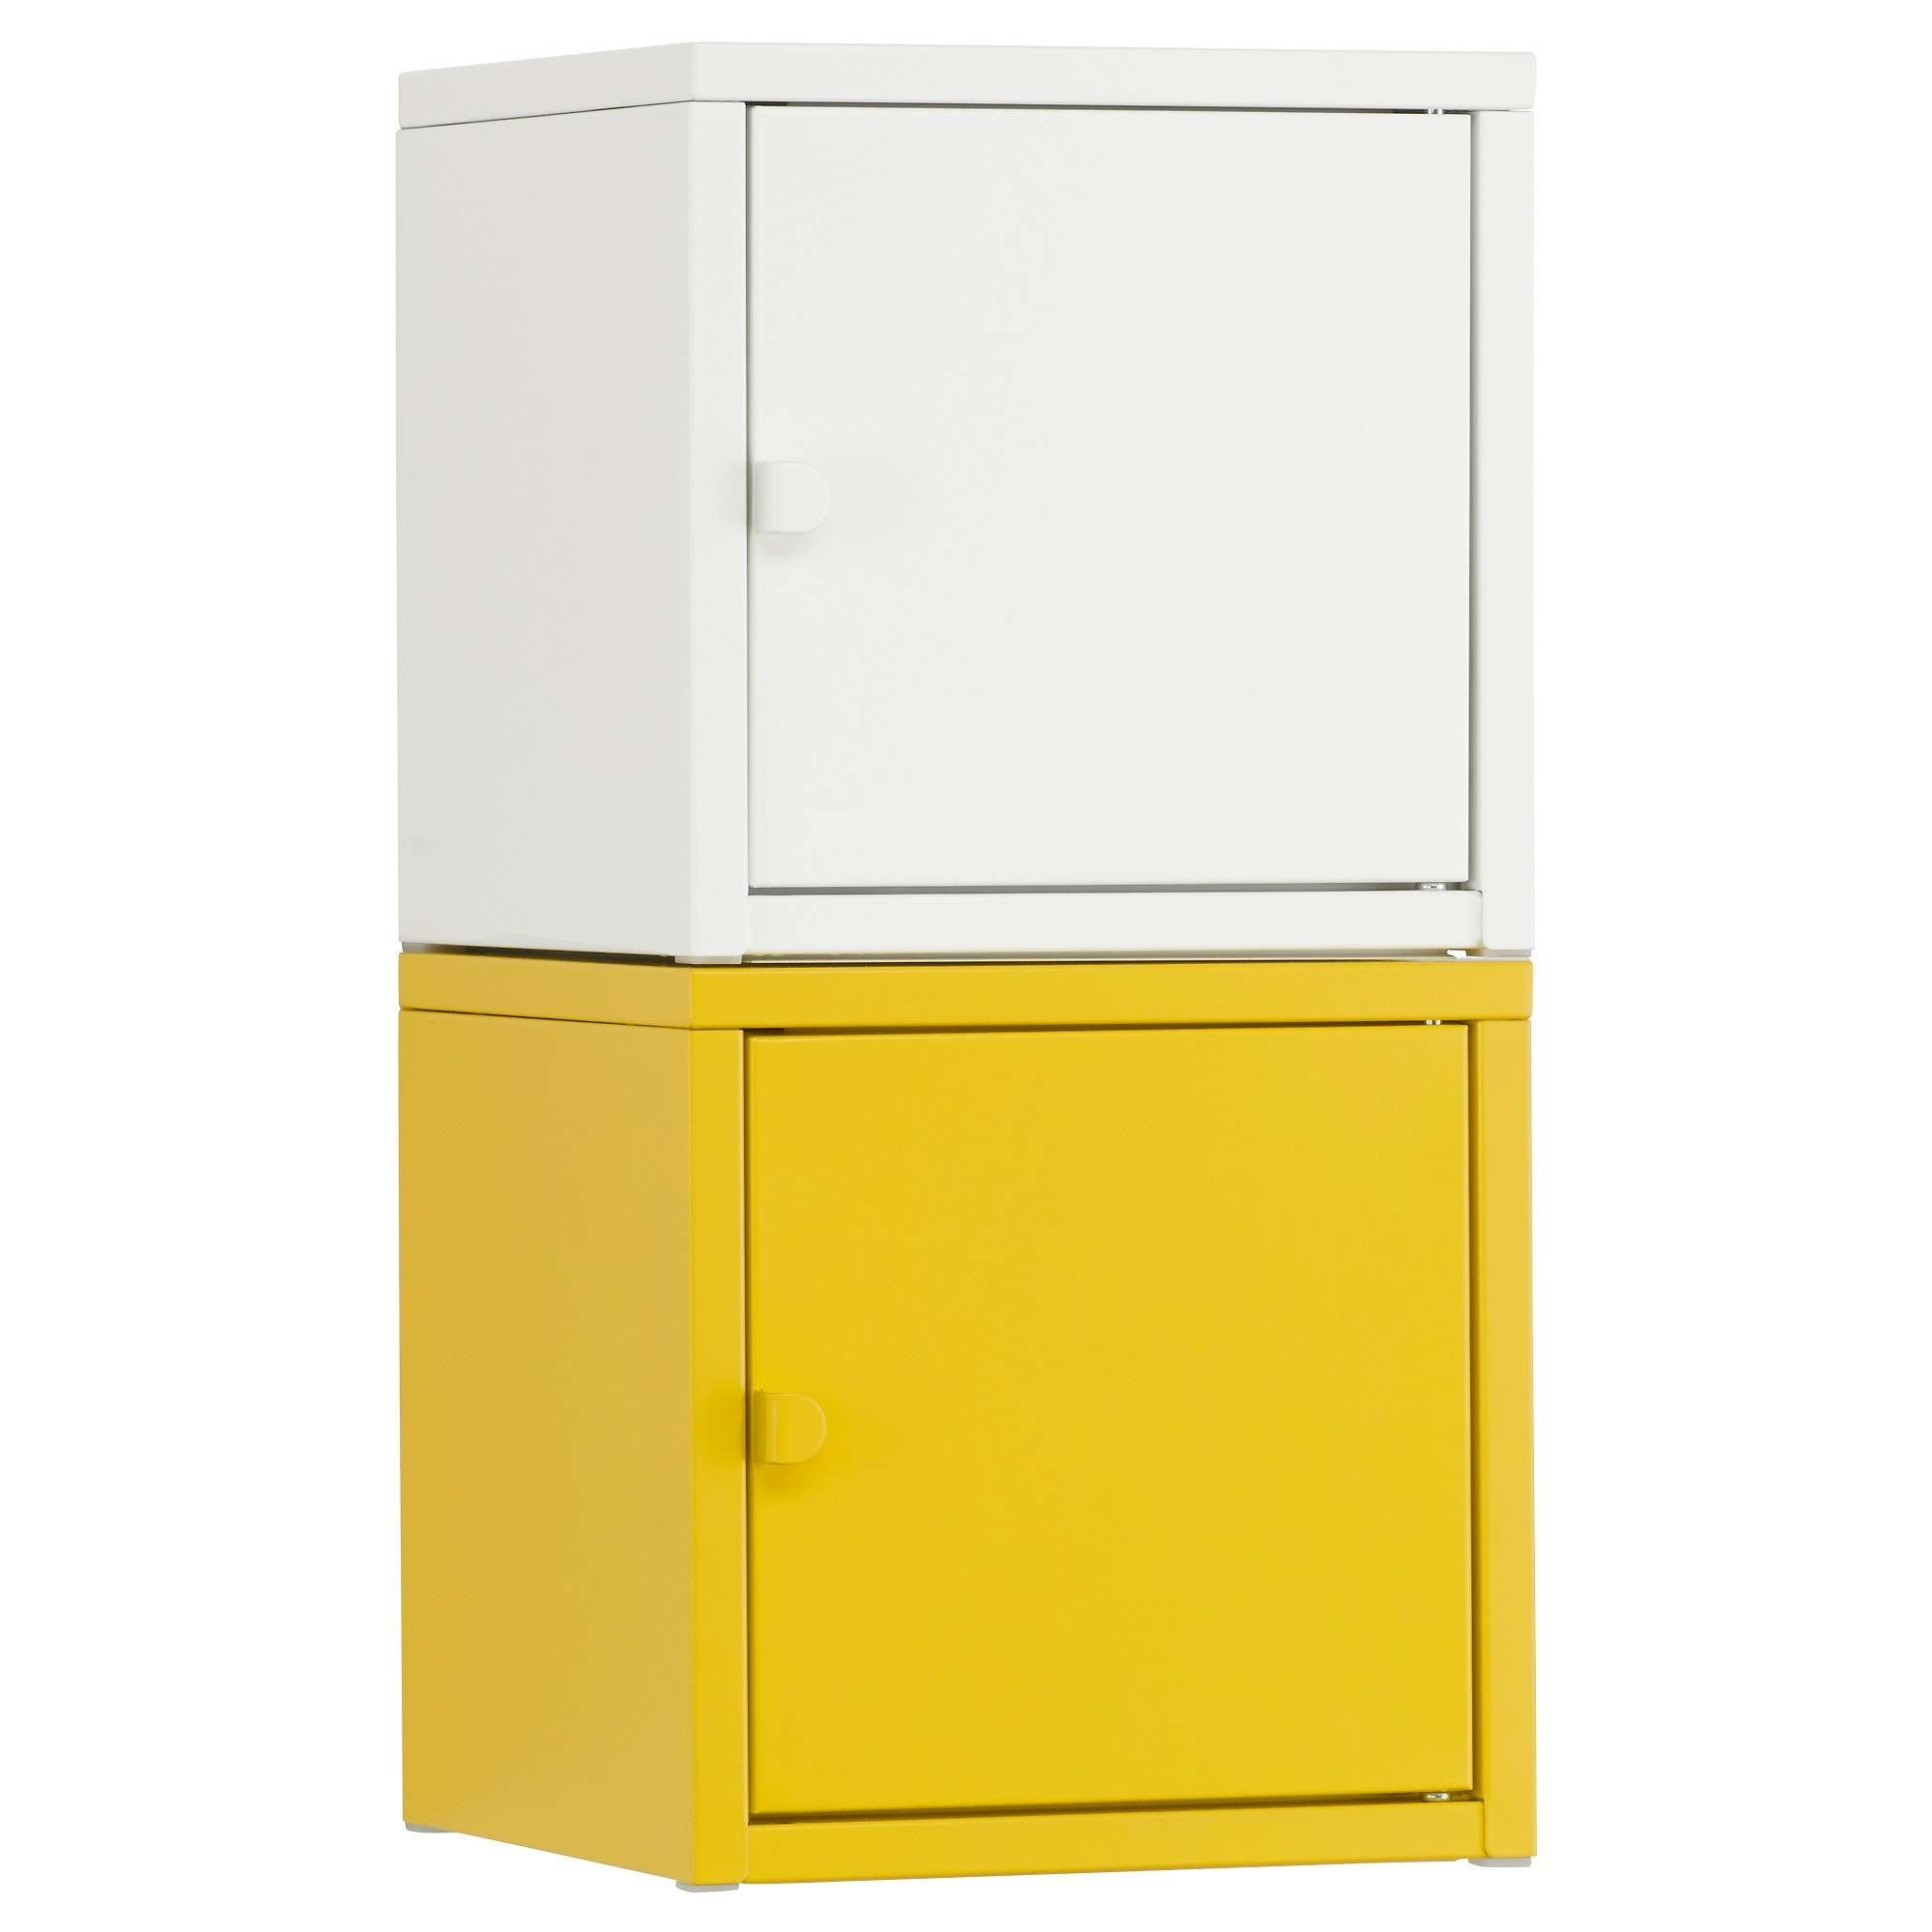 Cabinets Sideboards Ikea Image On Remarkable Wide Storage Cabinet Regarding 36 Inch Sideboards (View 12 of 20)